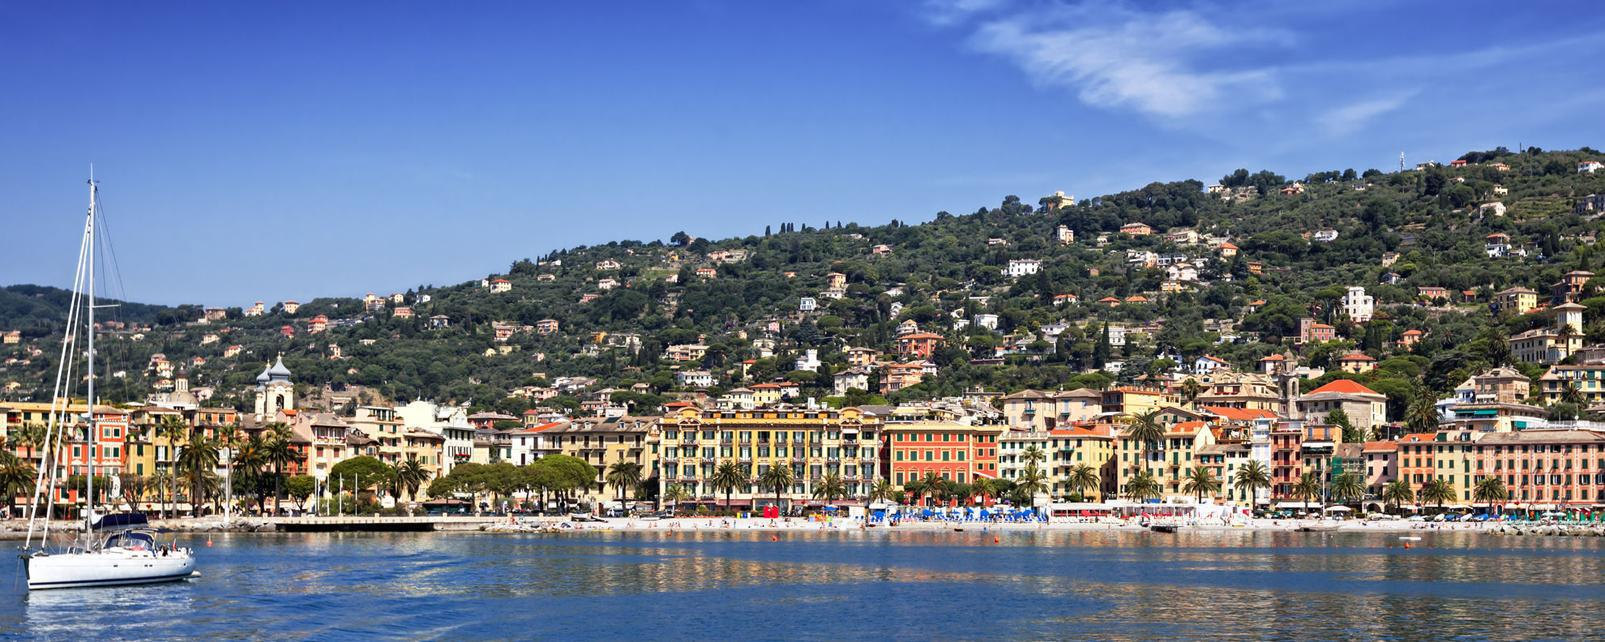 Hotels In Santa Margherita Ligure